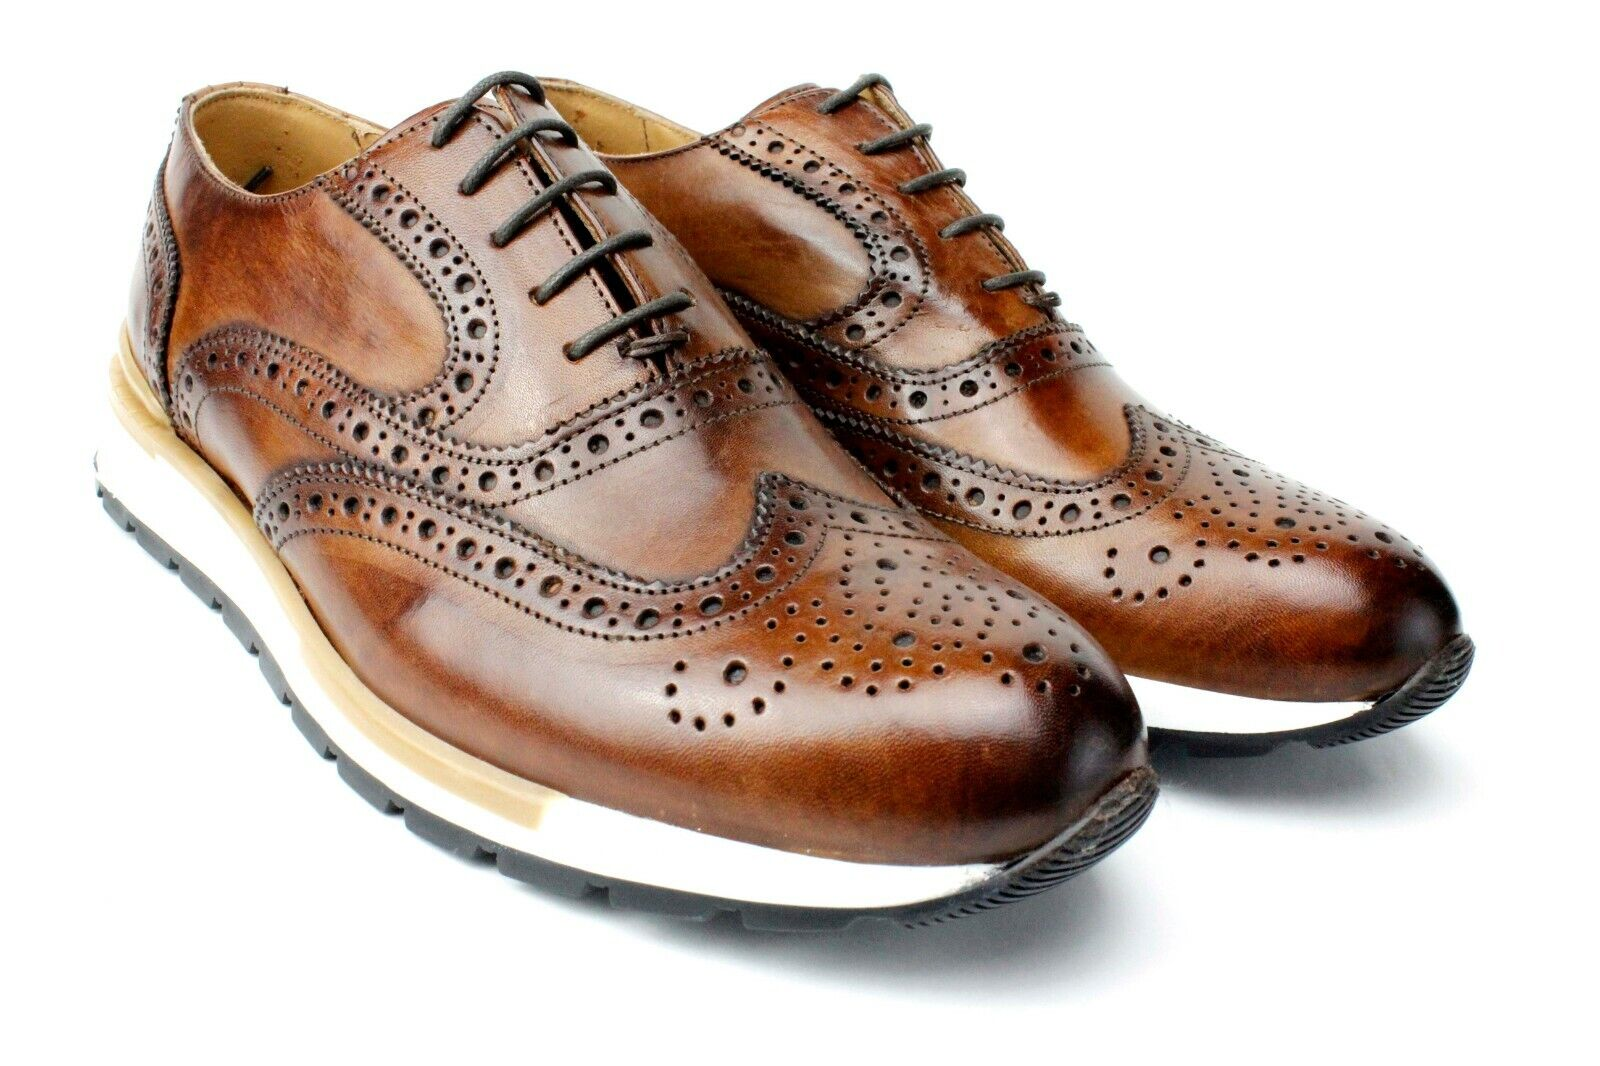 IVAN TROY Jamal Brown Lace Up Italian Leather Dress shoes Oxford Office shoes